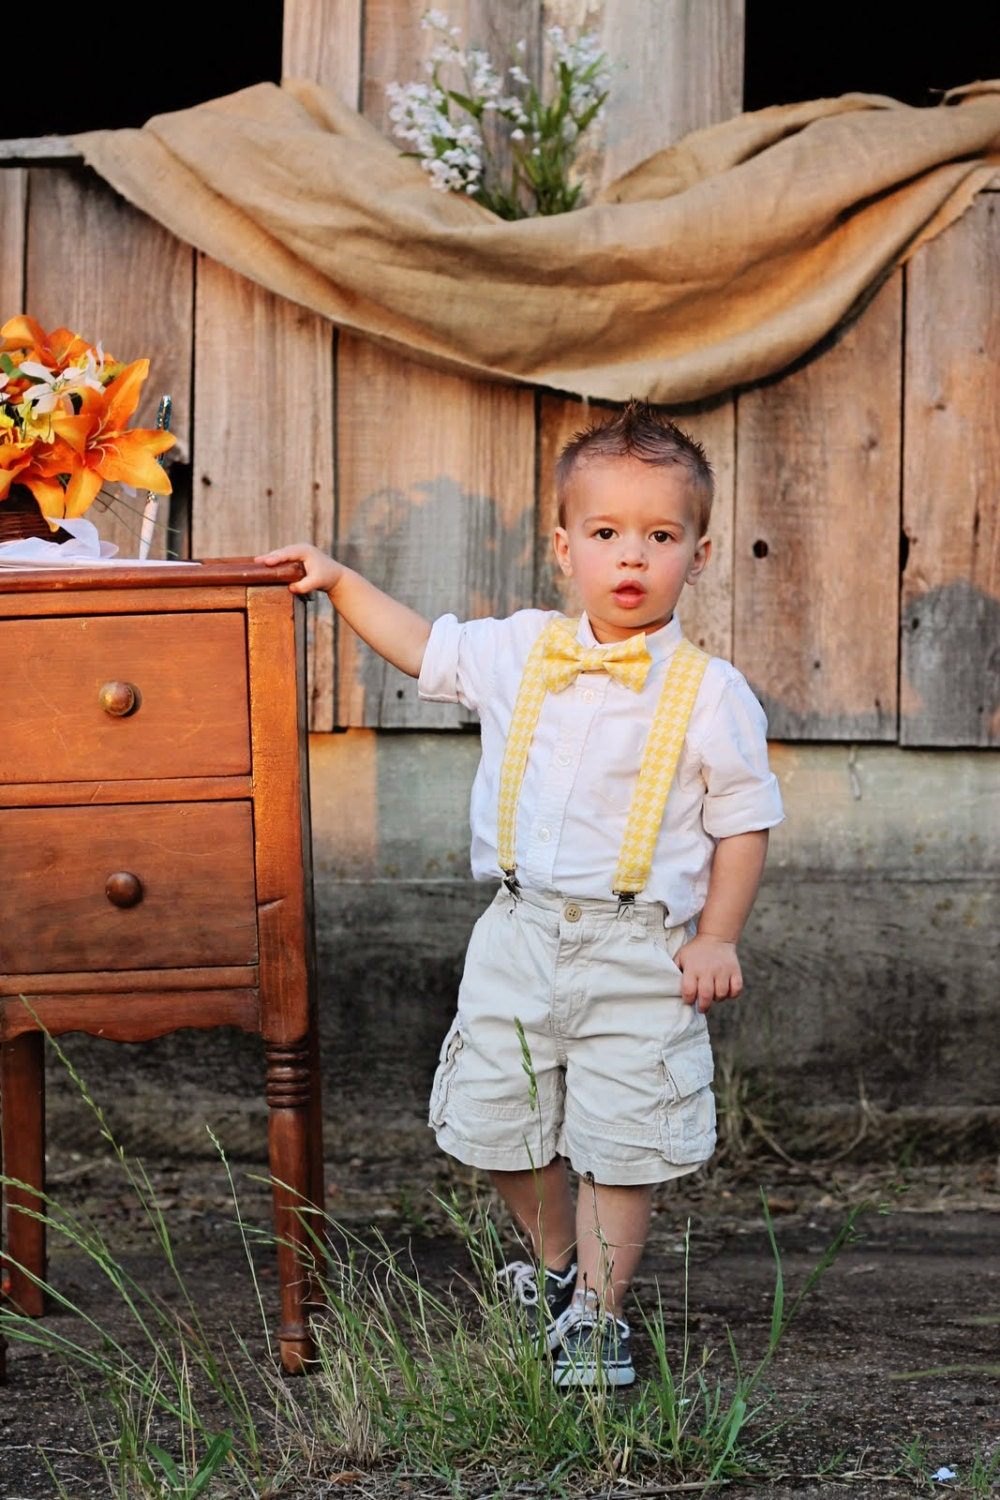 Dockers Toddler & Infants Boys' Shirt, Bow Tie, Suspenders & Pants - Plaid. Sold by Sears. $ Dockers Toddler & Infants Boys' Shirt, Bow Tie, Suspenders & Pants - Plaid. Sold by Sears. $ $ Inktastic Does This Make Me Look Like The Doctor? Infant Dress Bowtie 11th Dr.